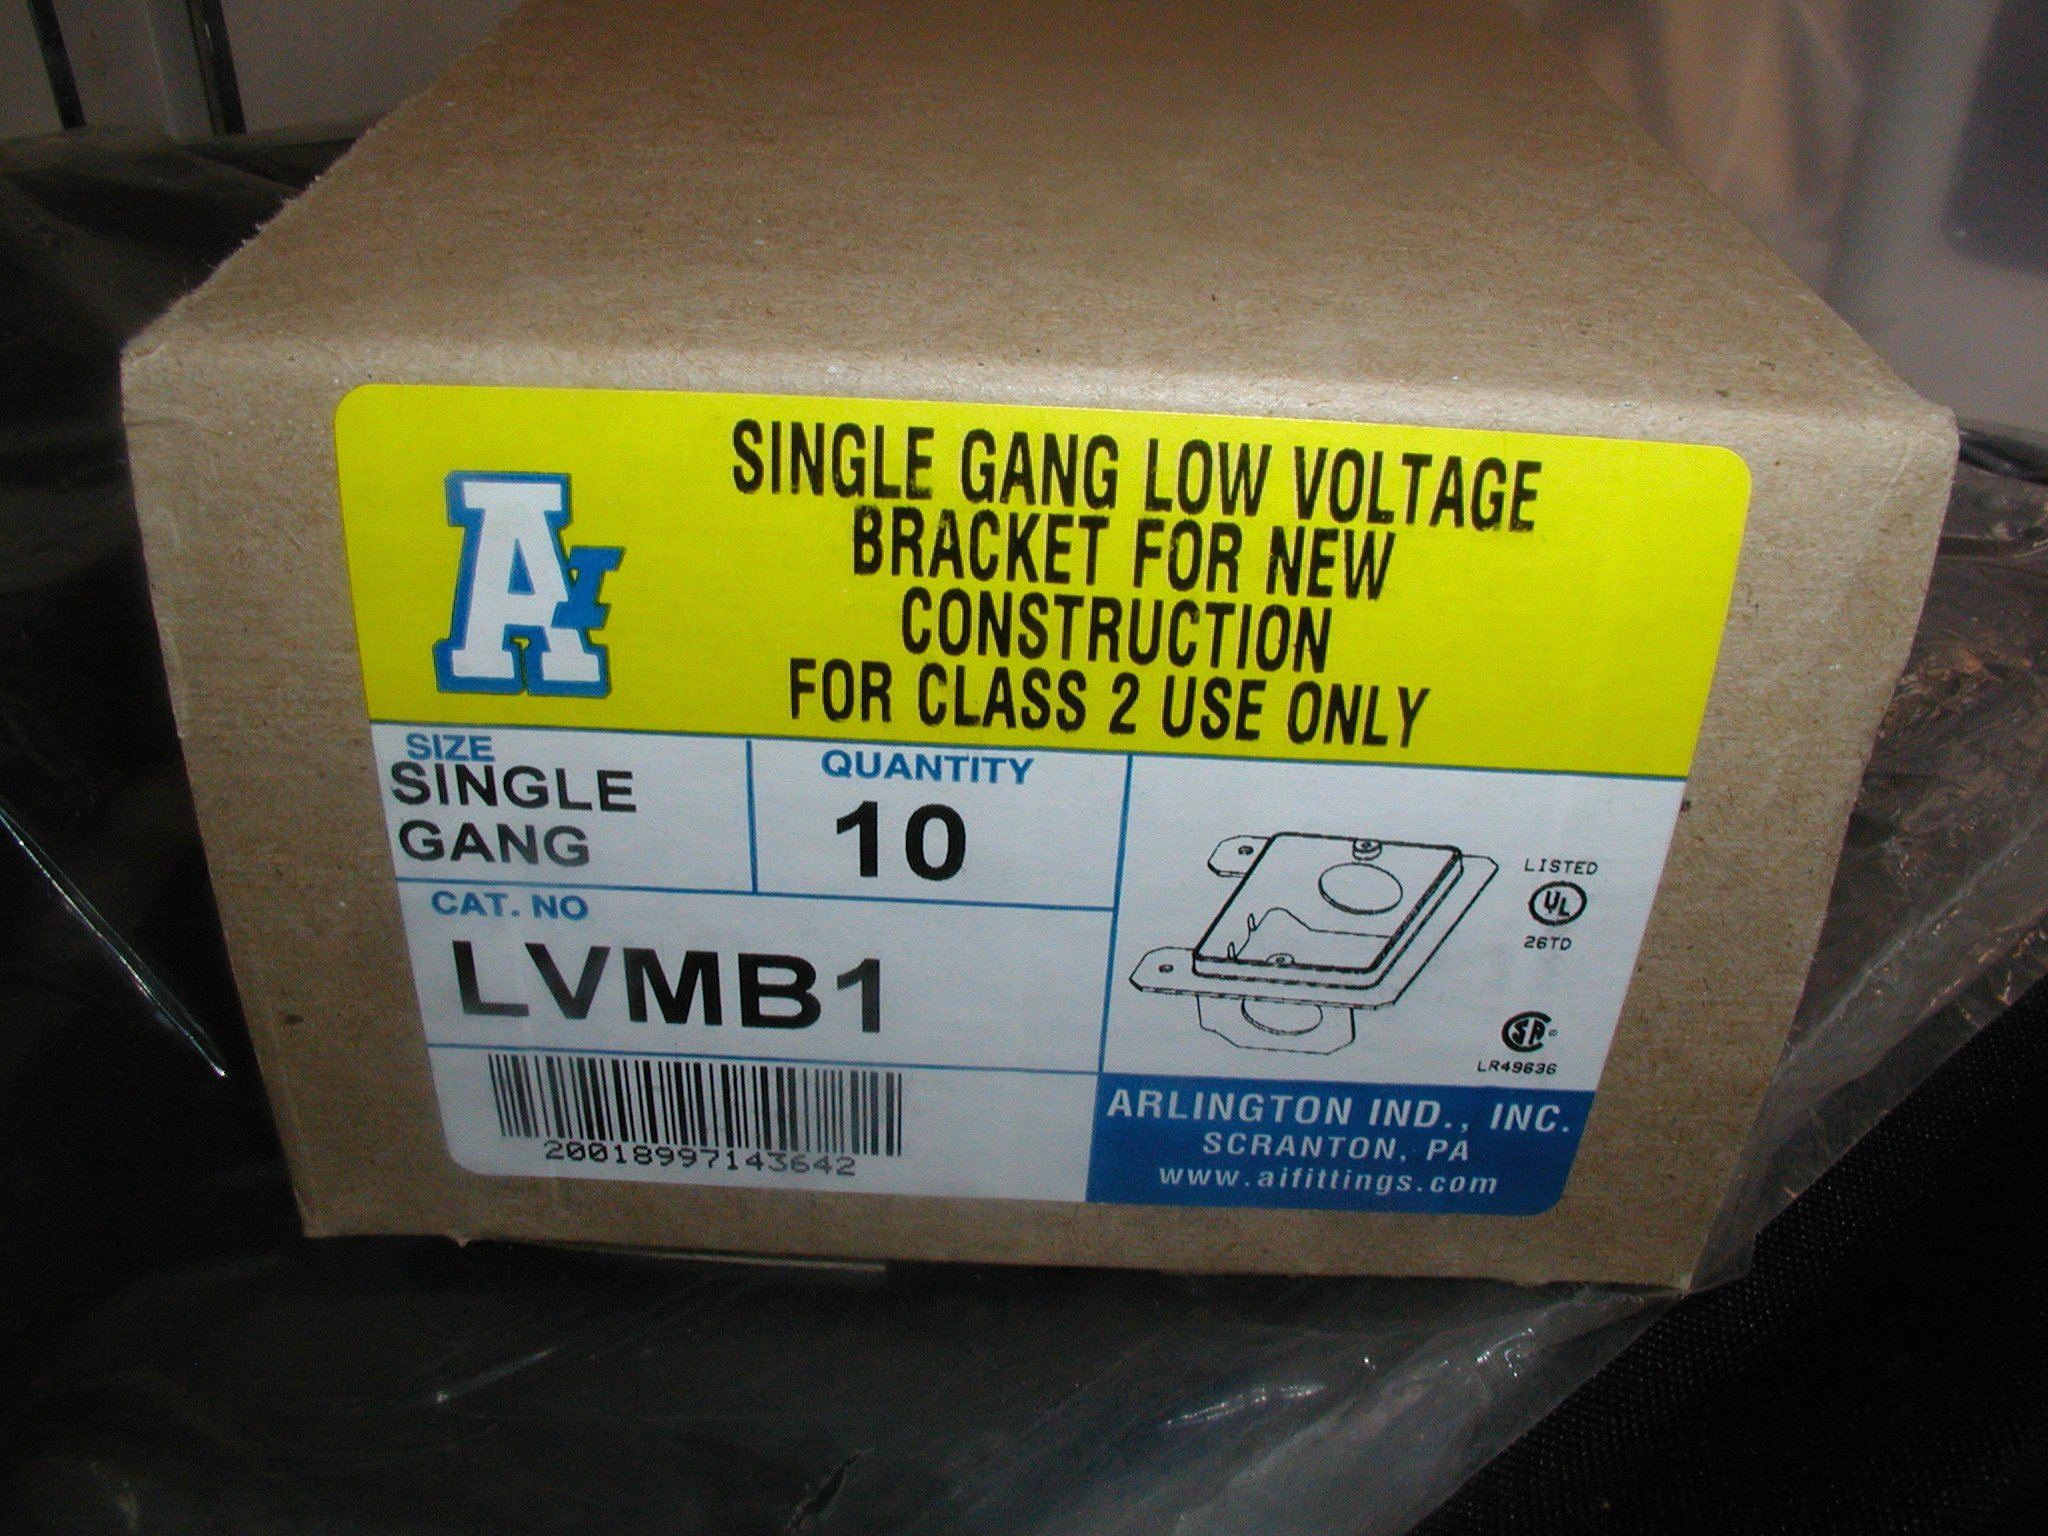 ARLINGTON LVMB1 LOW VOLTAGE BRACKET. SINGLE GANG. NEW WORK. SALE IS FOR A BOX OF TEN (10).